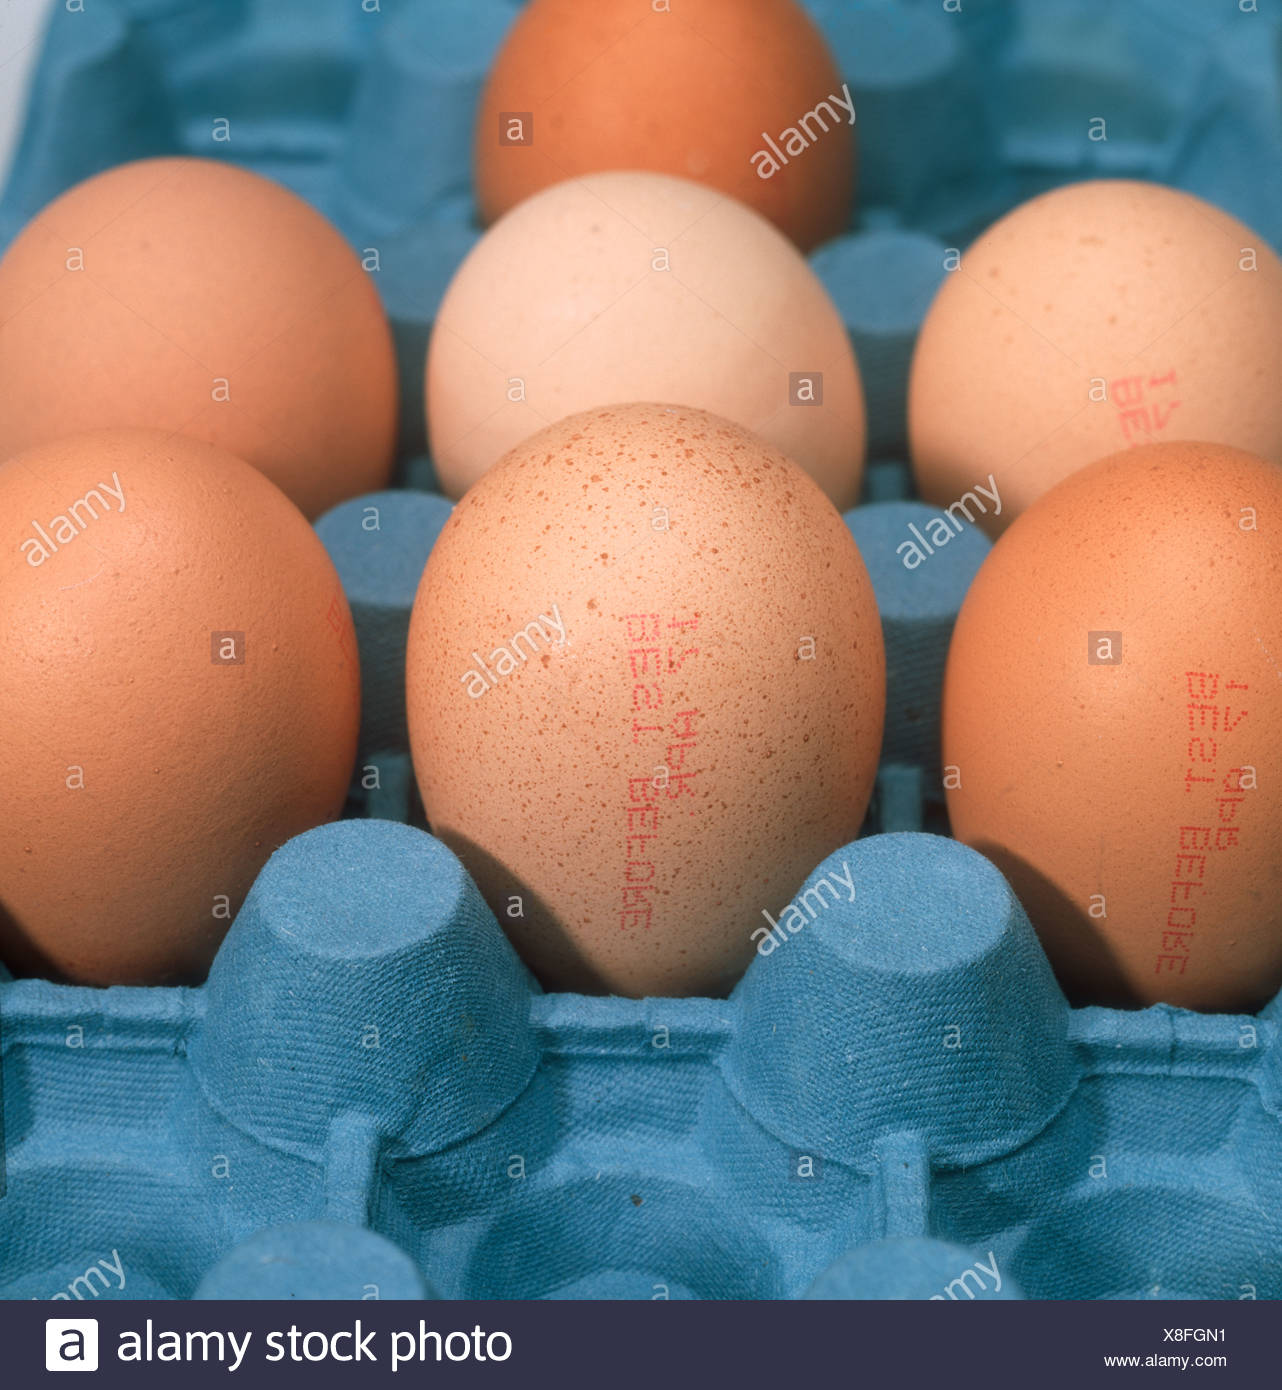 from Ibrahim dating eggs